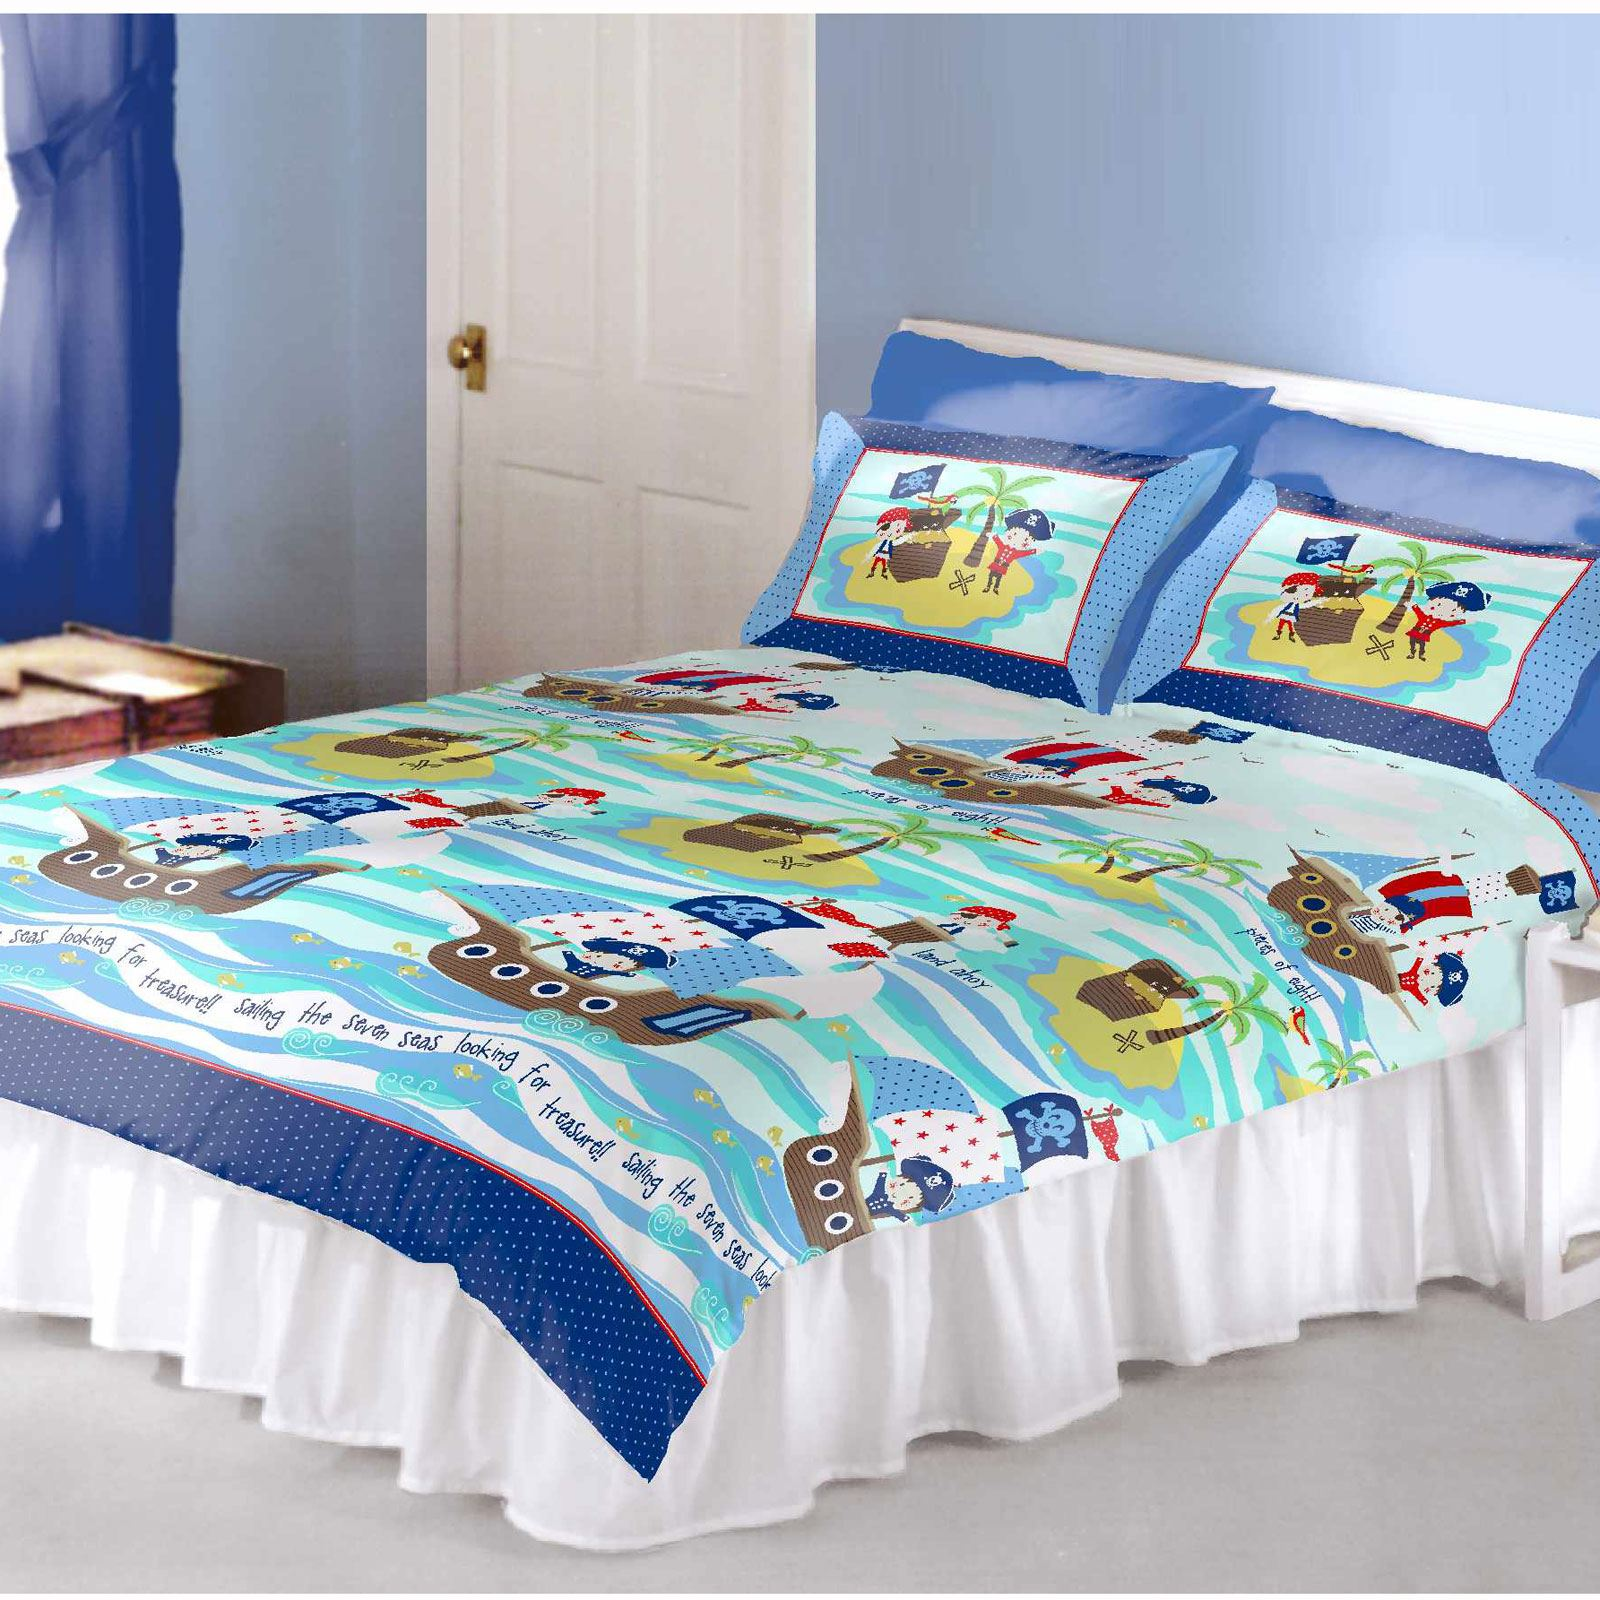 Kids' quilts often come as part of a set with matching bedding to create a cohesive look. A four-piece set may include the quilt, two shams, and a decorative pillow. A three-piece set has one quilt and two shams, while a five-piece set comes with two decorative pillows, two shams, and a quilt.